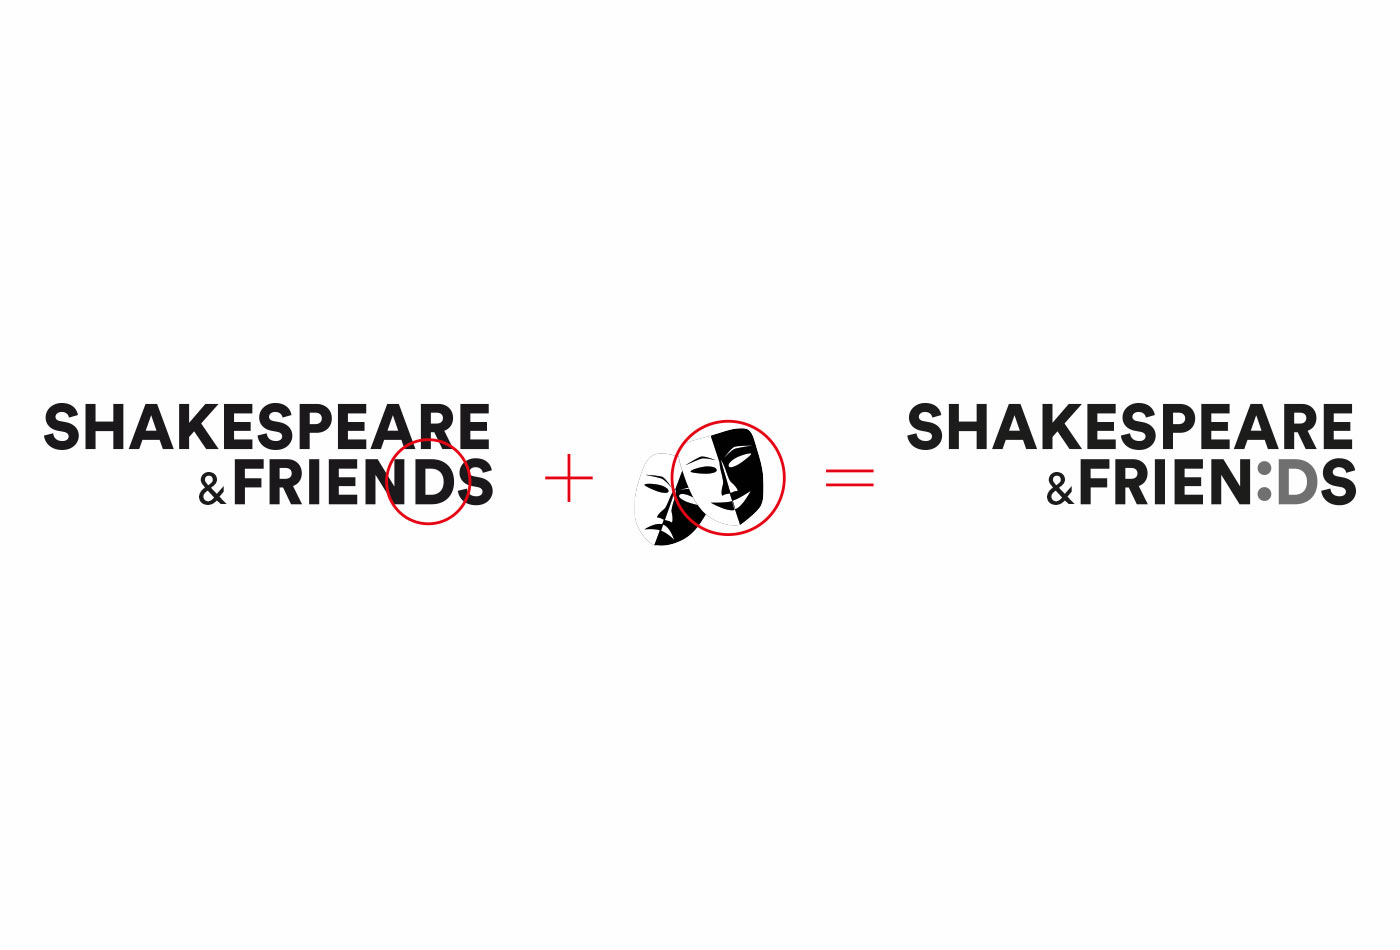 Shakespeare&Friends disseny